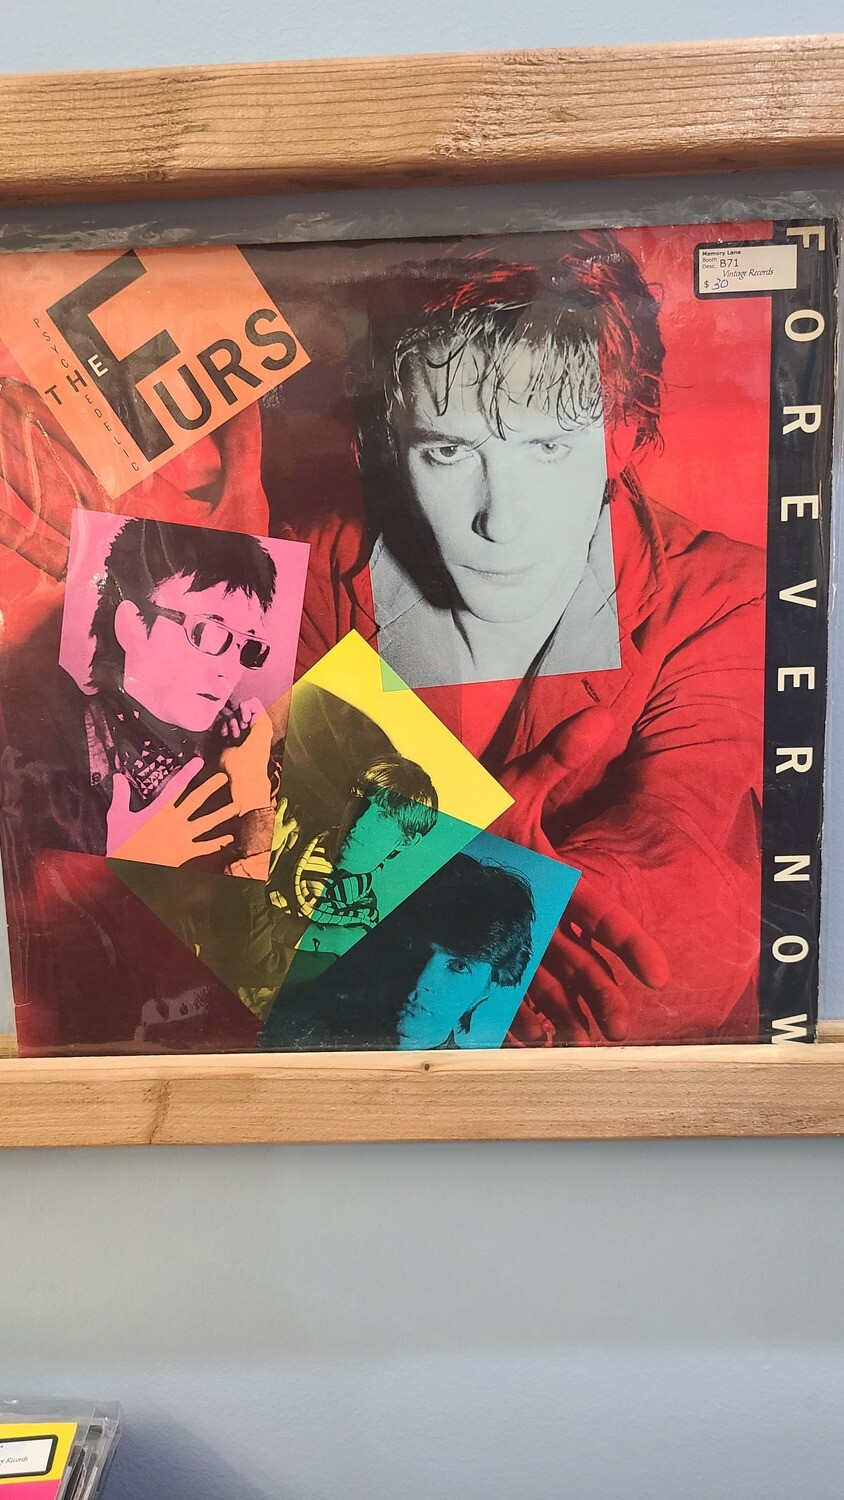 Furs - Forever Now